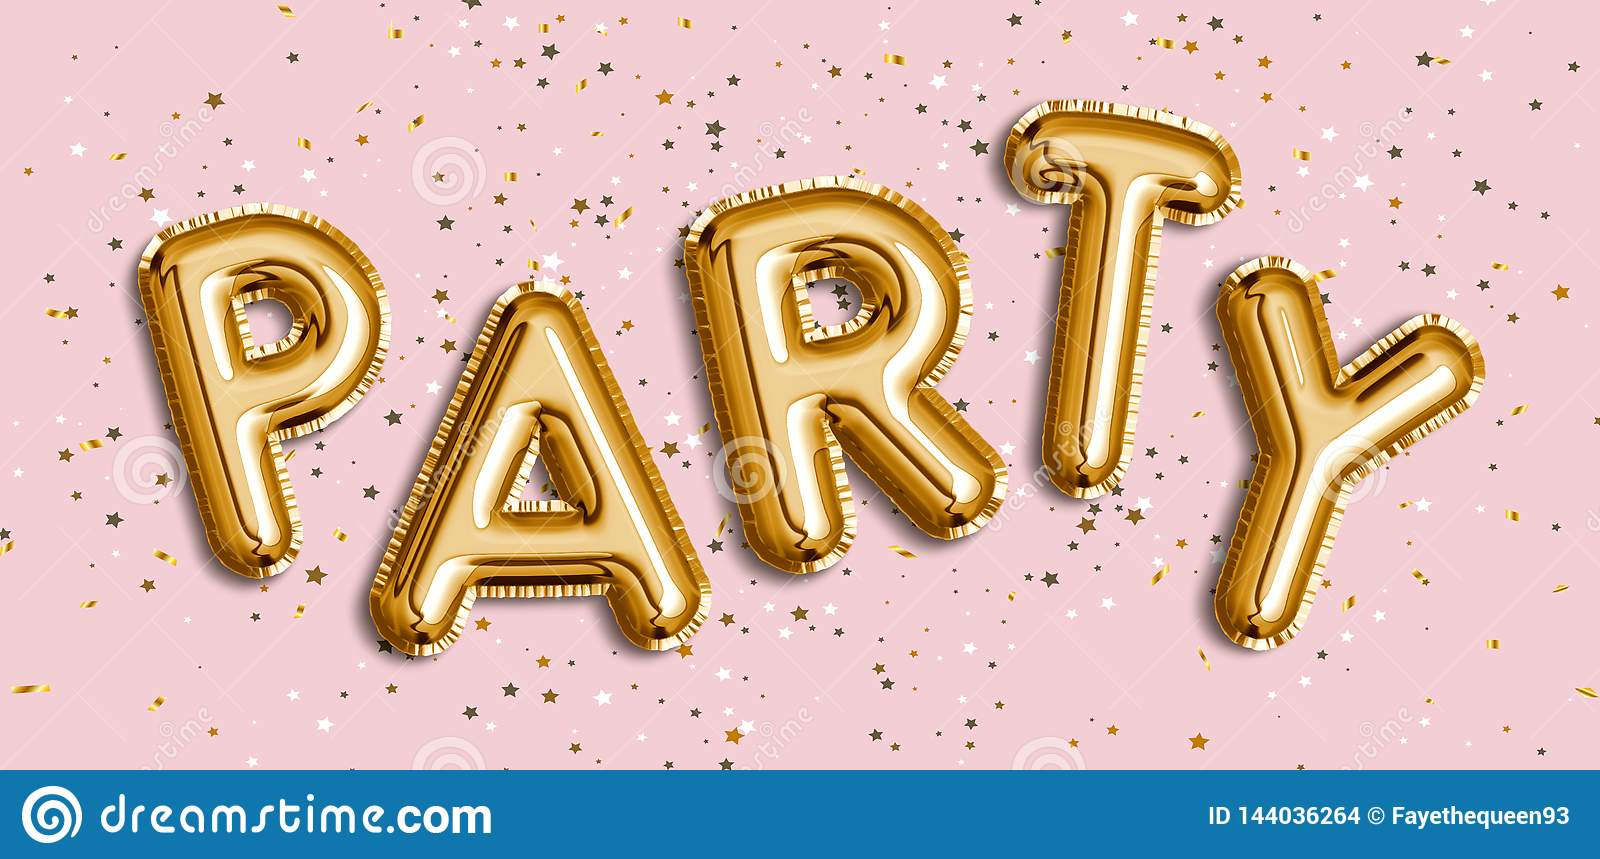 Gold Party Foil Balloon For Party  Word PARTY Made Of Balloon